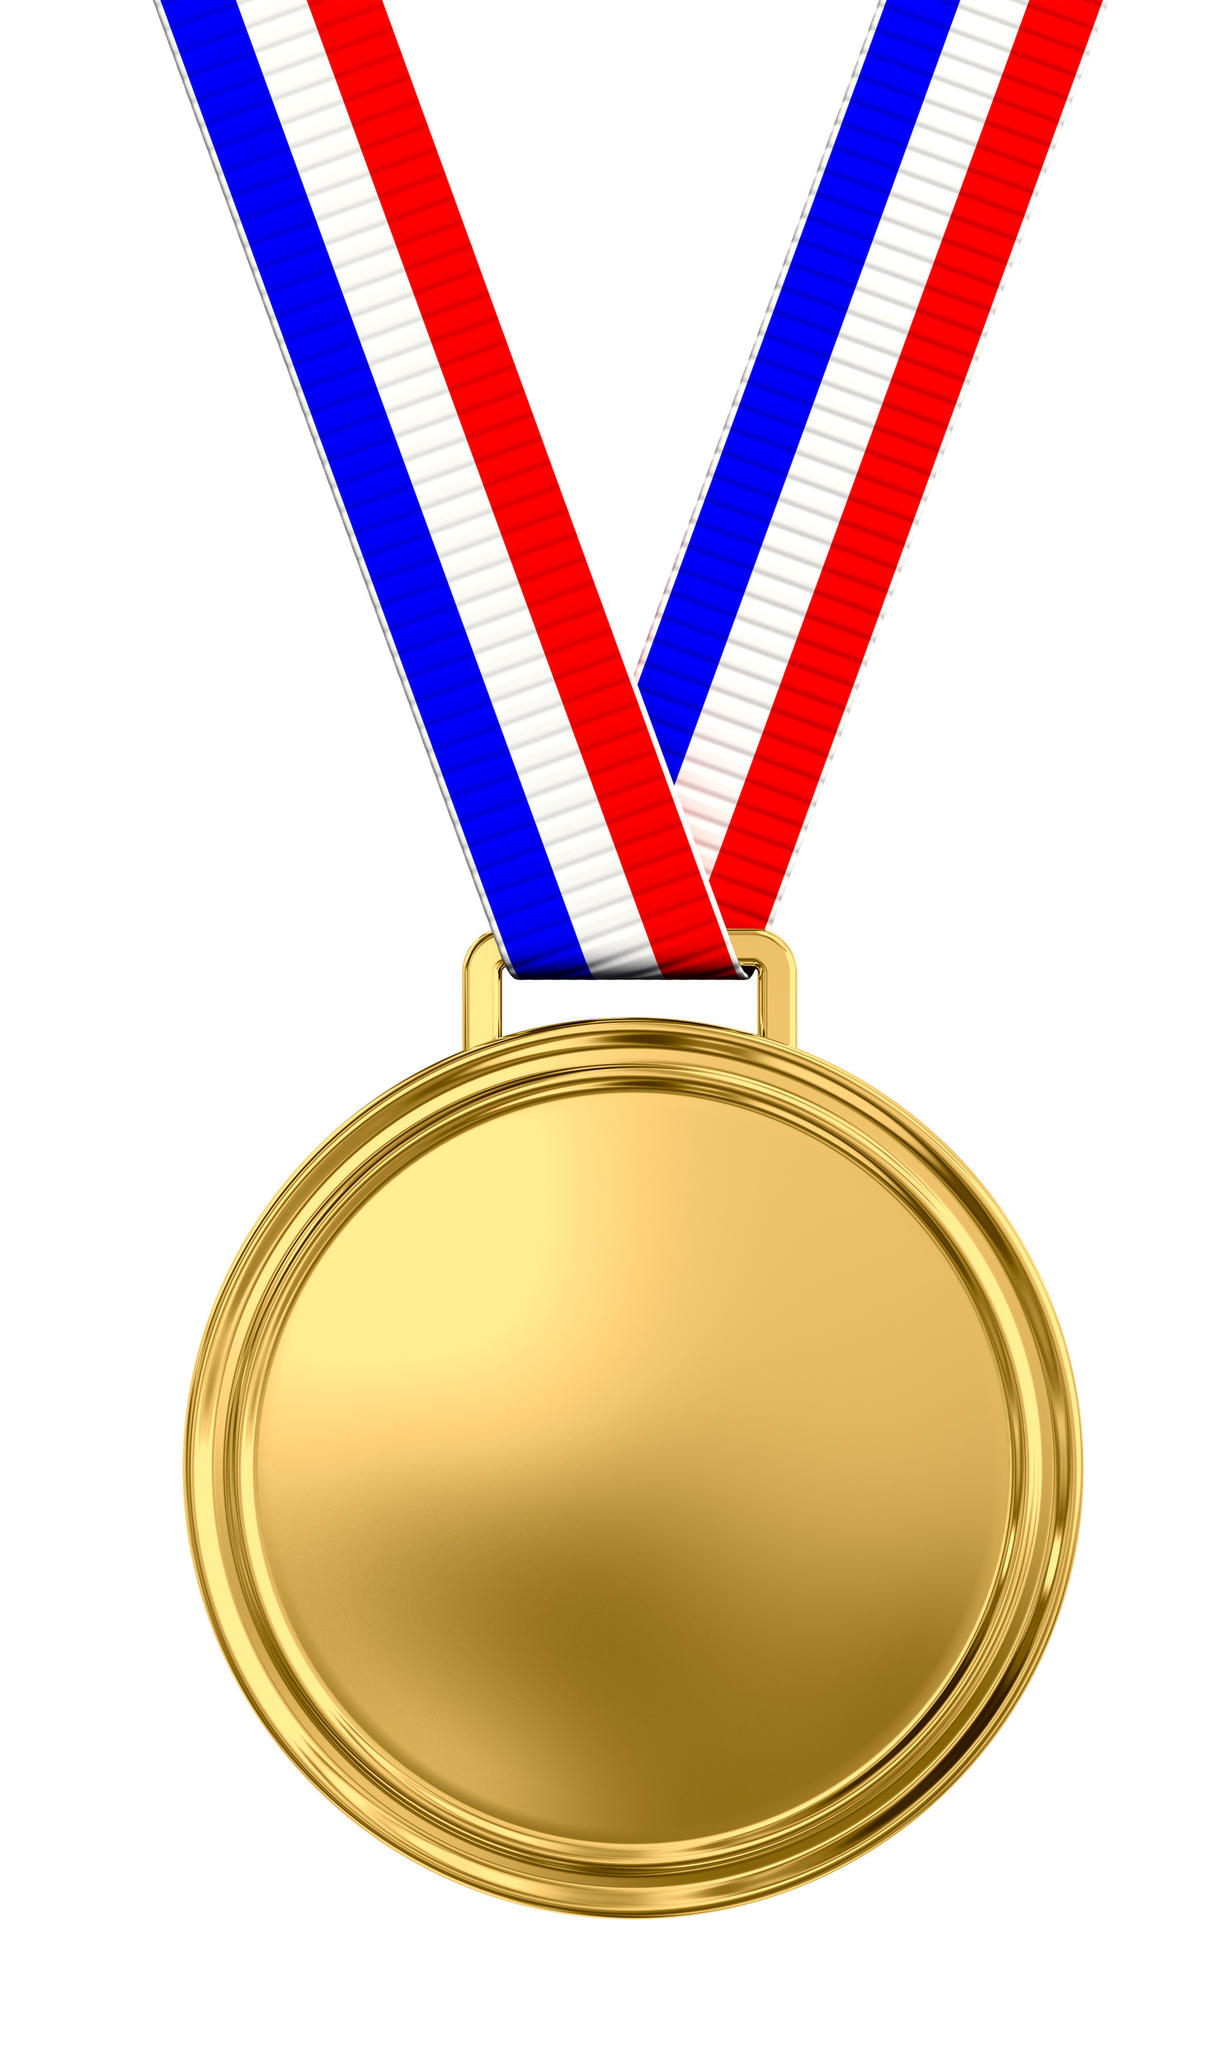 Image - Gold Medal.png | TheFutureOfEuropes Wiki | FANDOM powered by ...